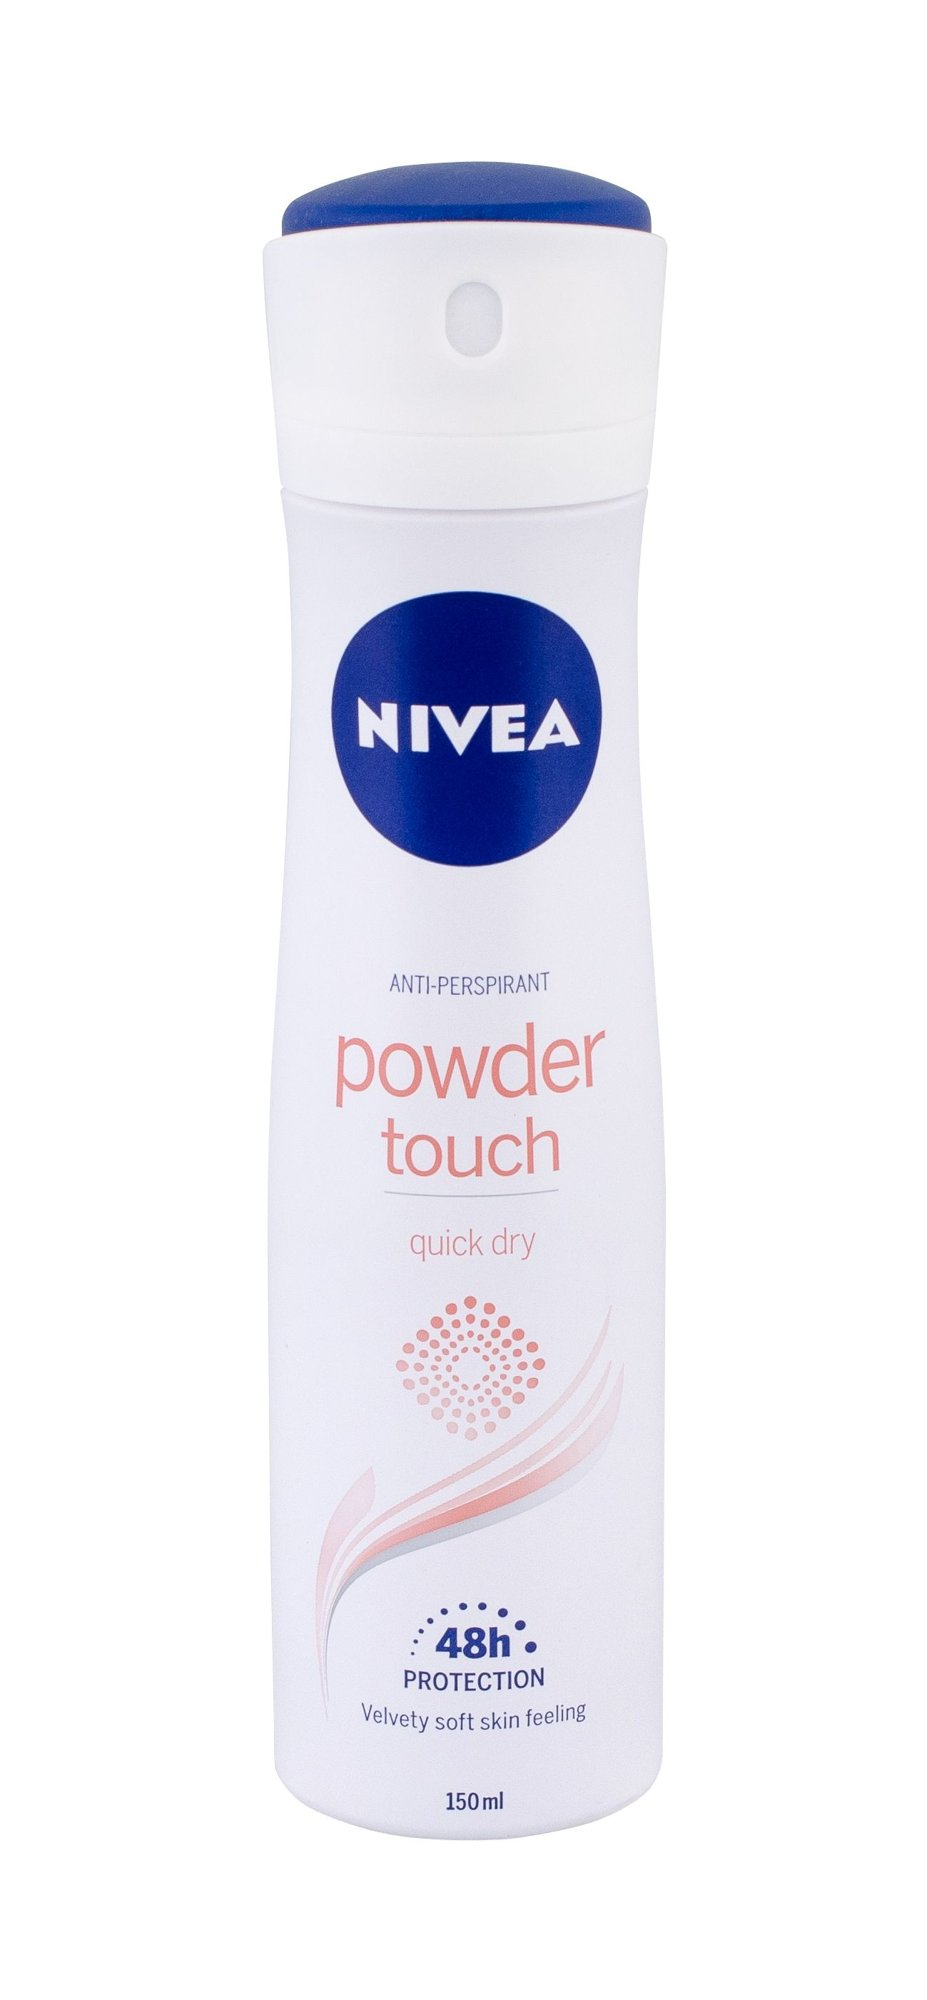 Nivea Powder Touch Cosmetic 150ml